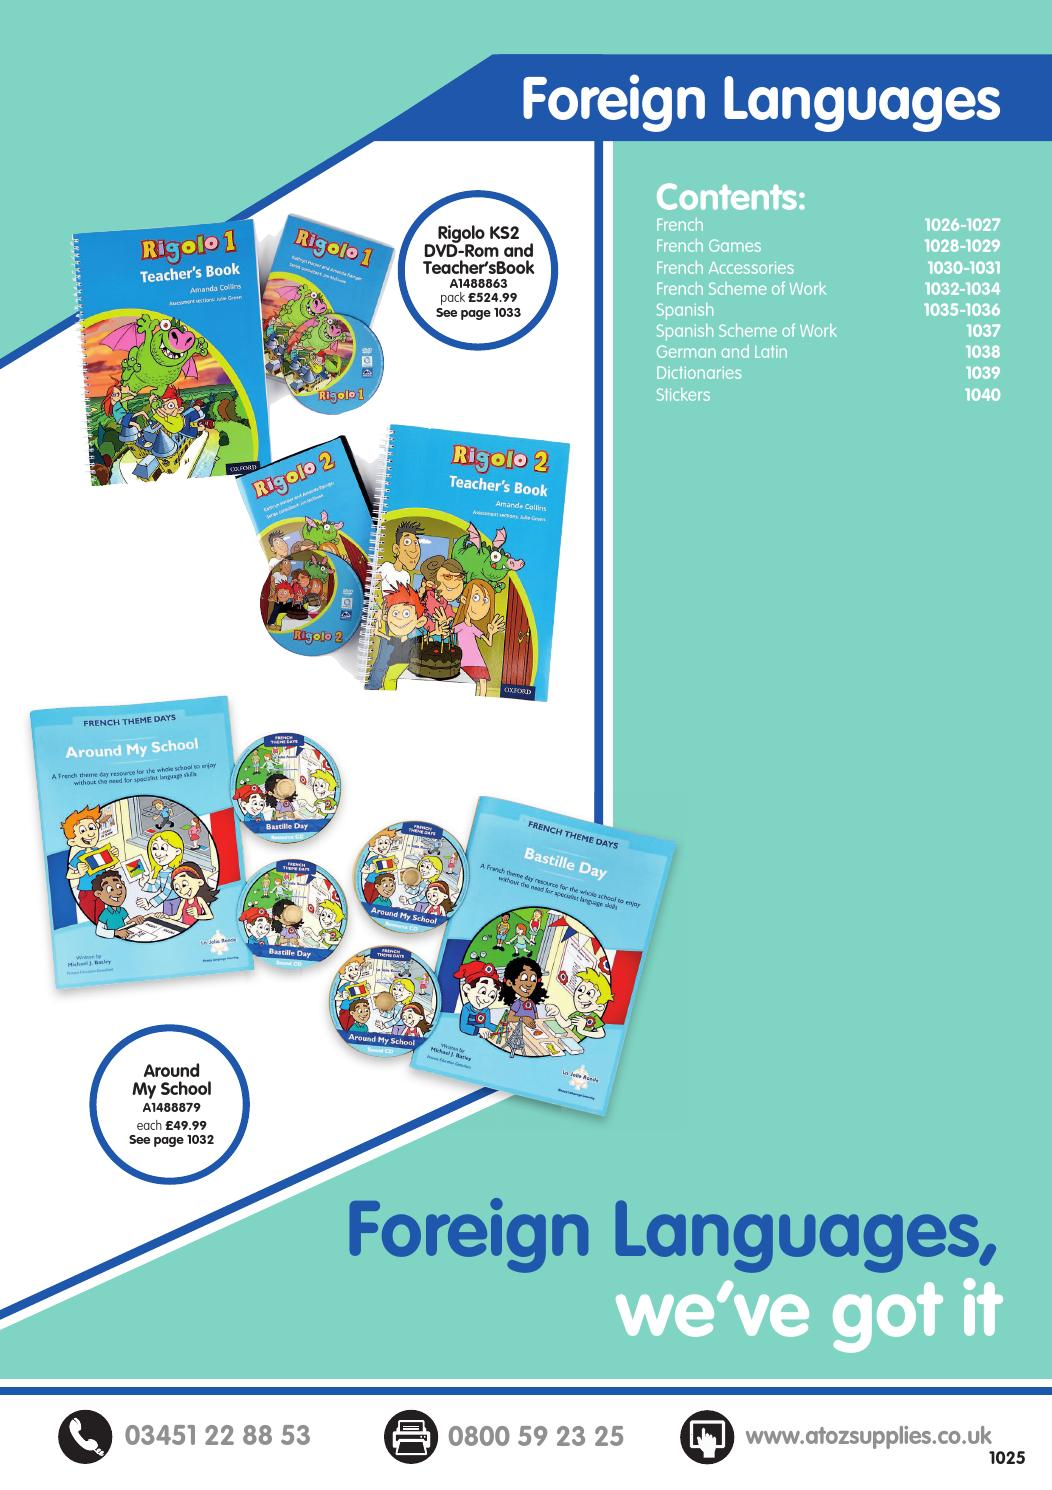 AtoZ Catalogue 2016/17 - Foreign Languages by Findel Ltd - issuu